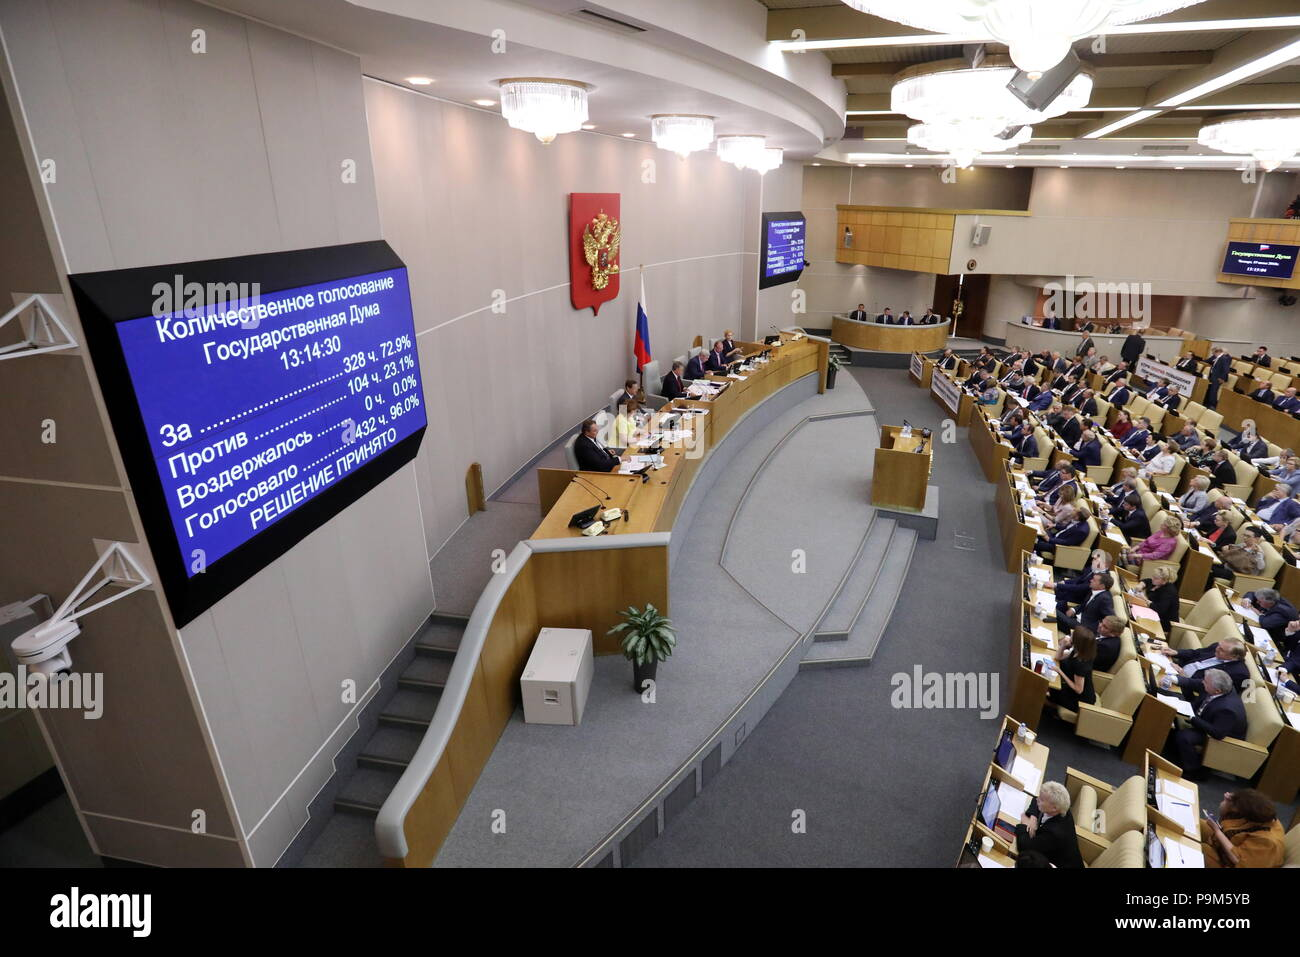 Moscow, Russia. 19th July, 2018. MOSCOW, RUSSIA - JULY 19, 2018: Members vote during a plenary session of the Russian State Duma holding the first reading of a draft law to raise the retirement age from 60 to 65 for men, and from 55 to 63 for women over a 15-year period. Anton Novoderezhkin/TASS Credit: ITAR-TASS News Agency/Alamy Live News - Stock Image